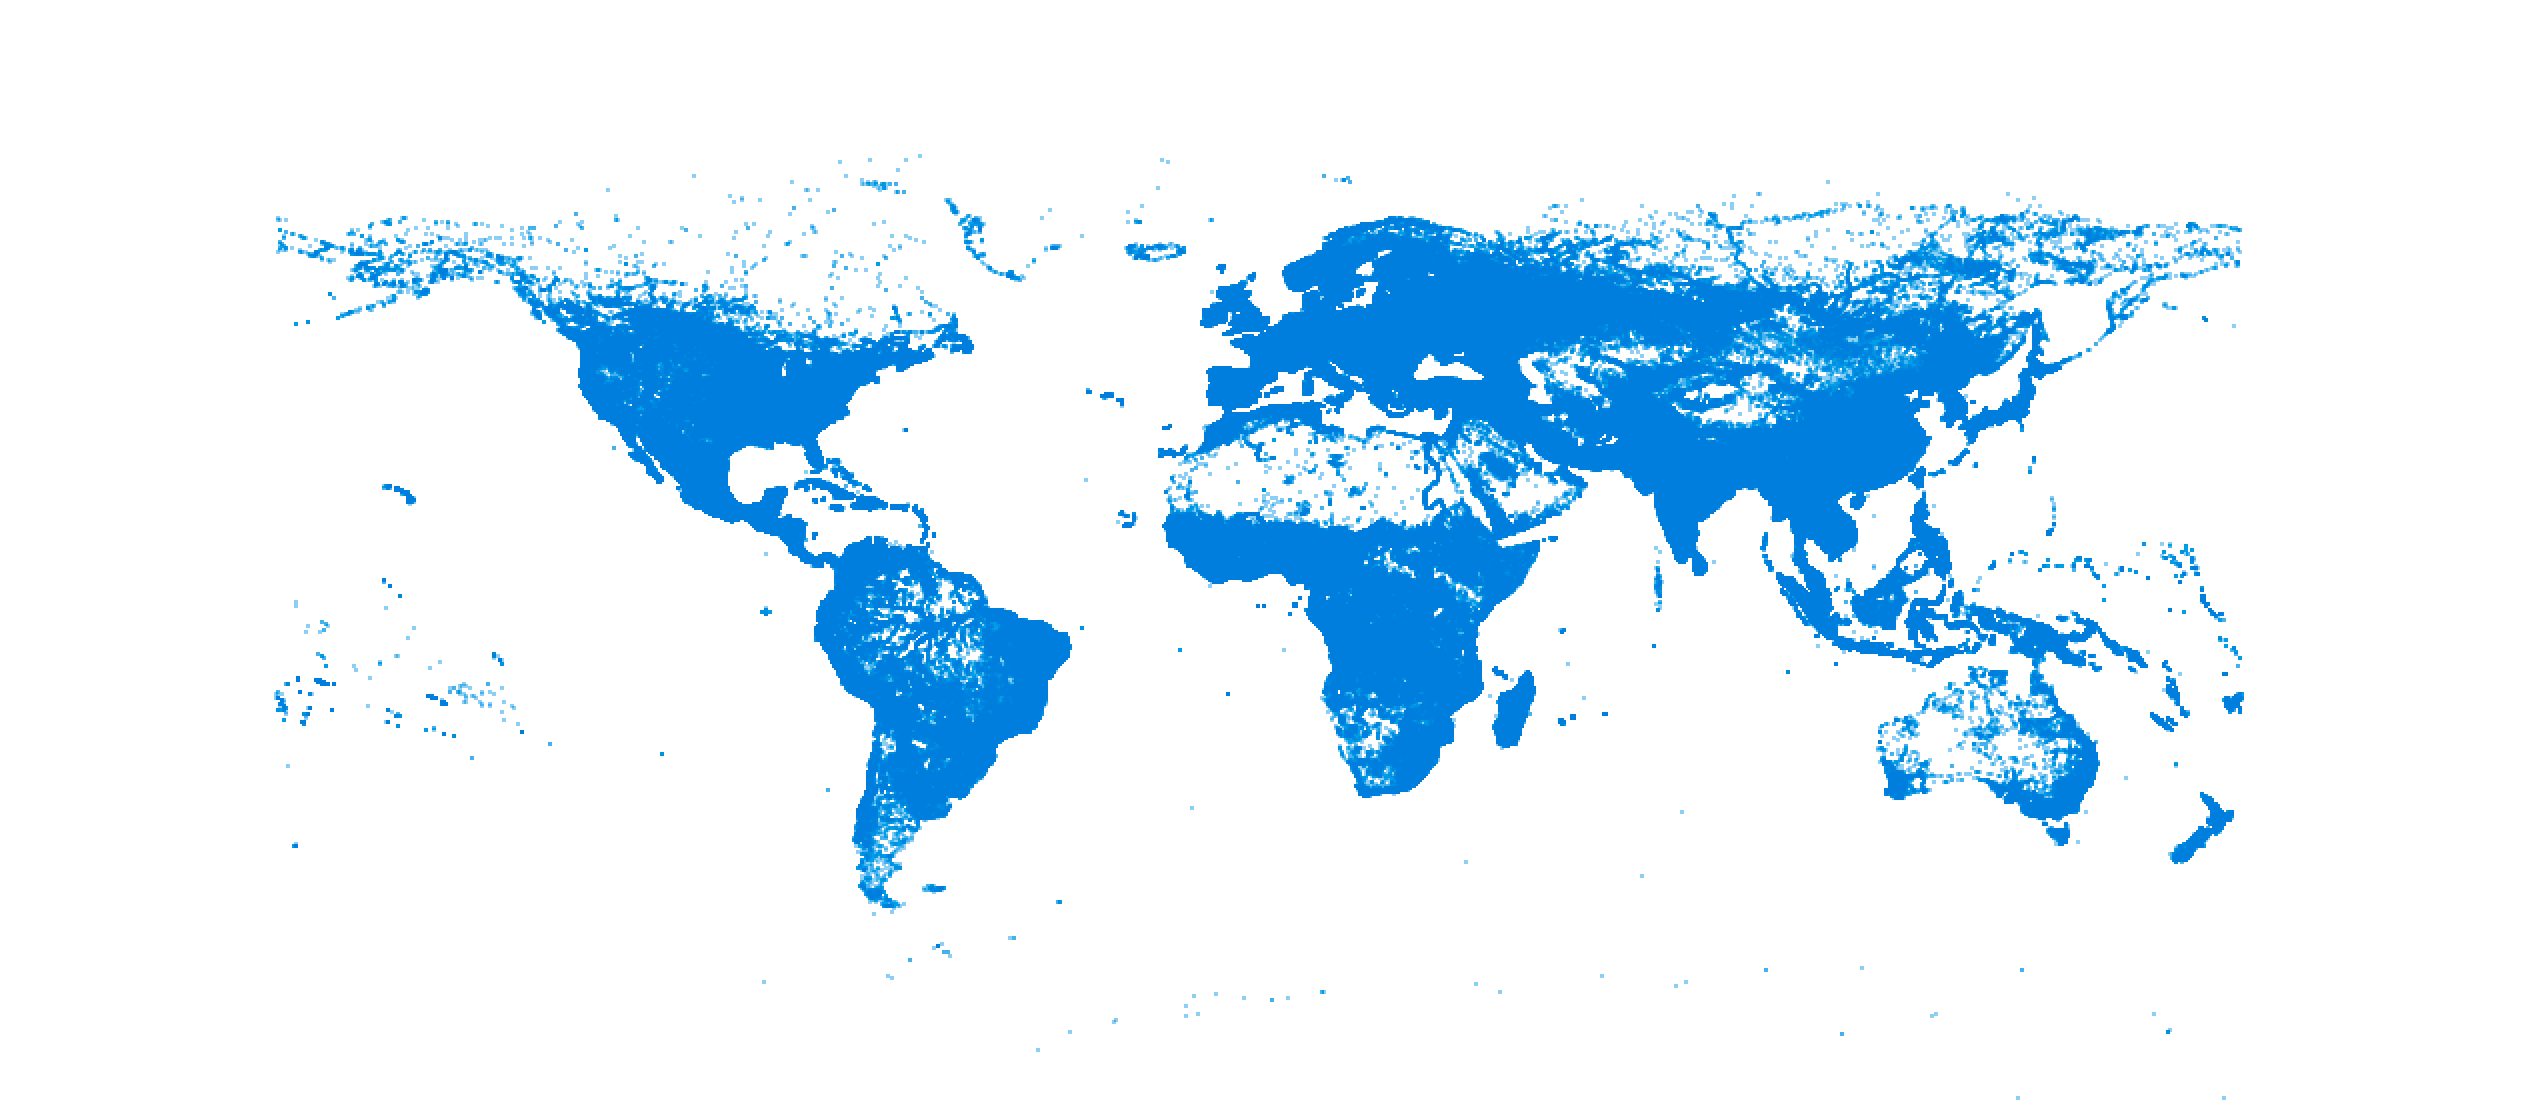 World map in blue, more dots after GeoNames import